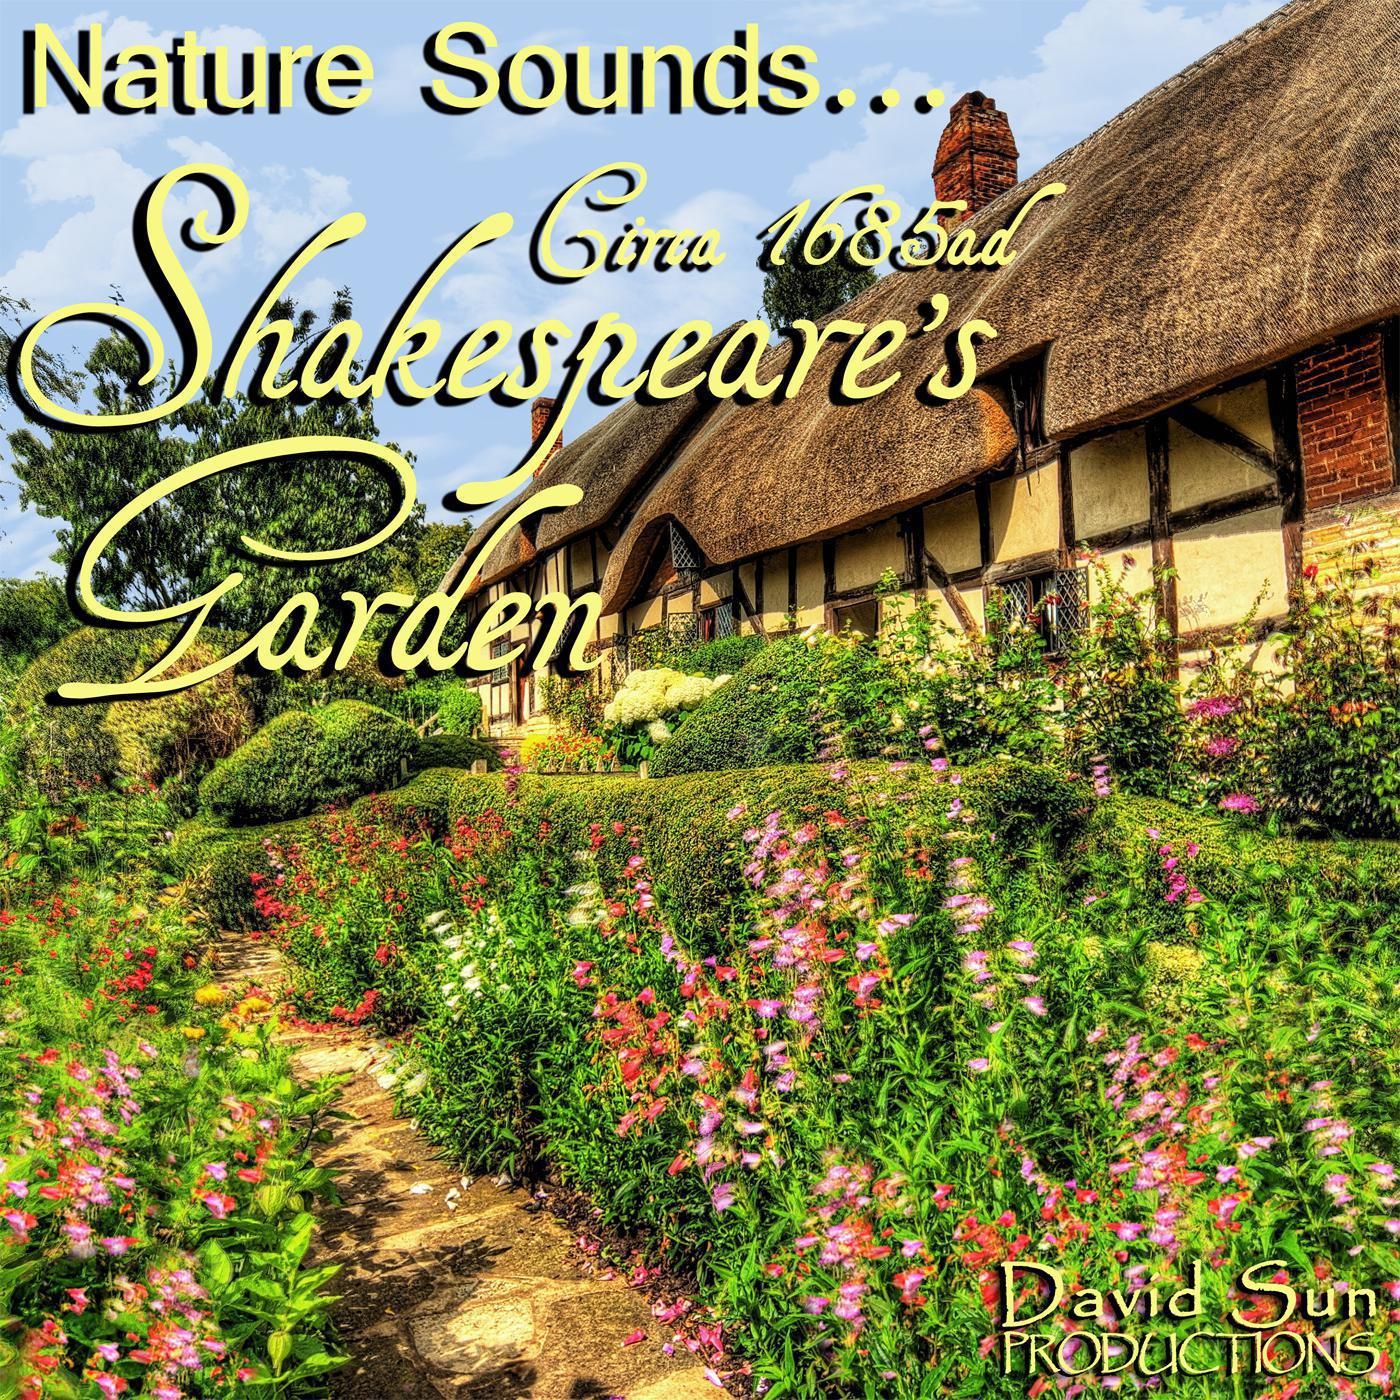 Shakespeare's Garden (Nature Sounds)